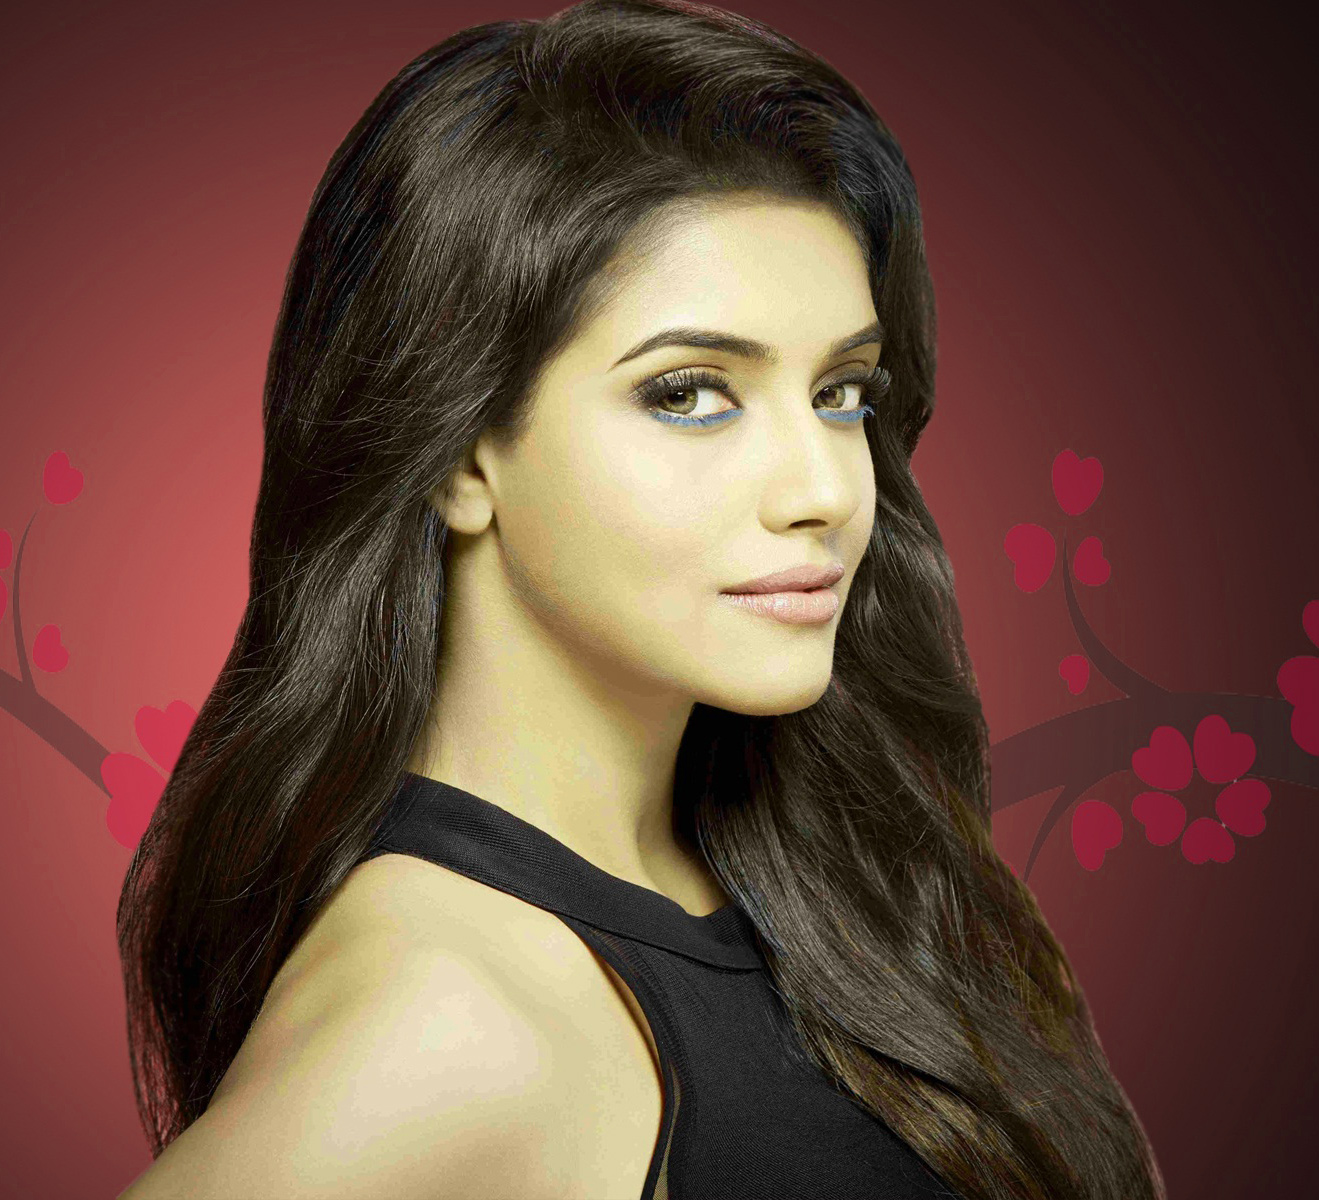 Asin images 1 (72)